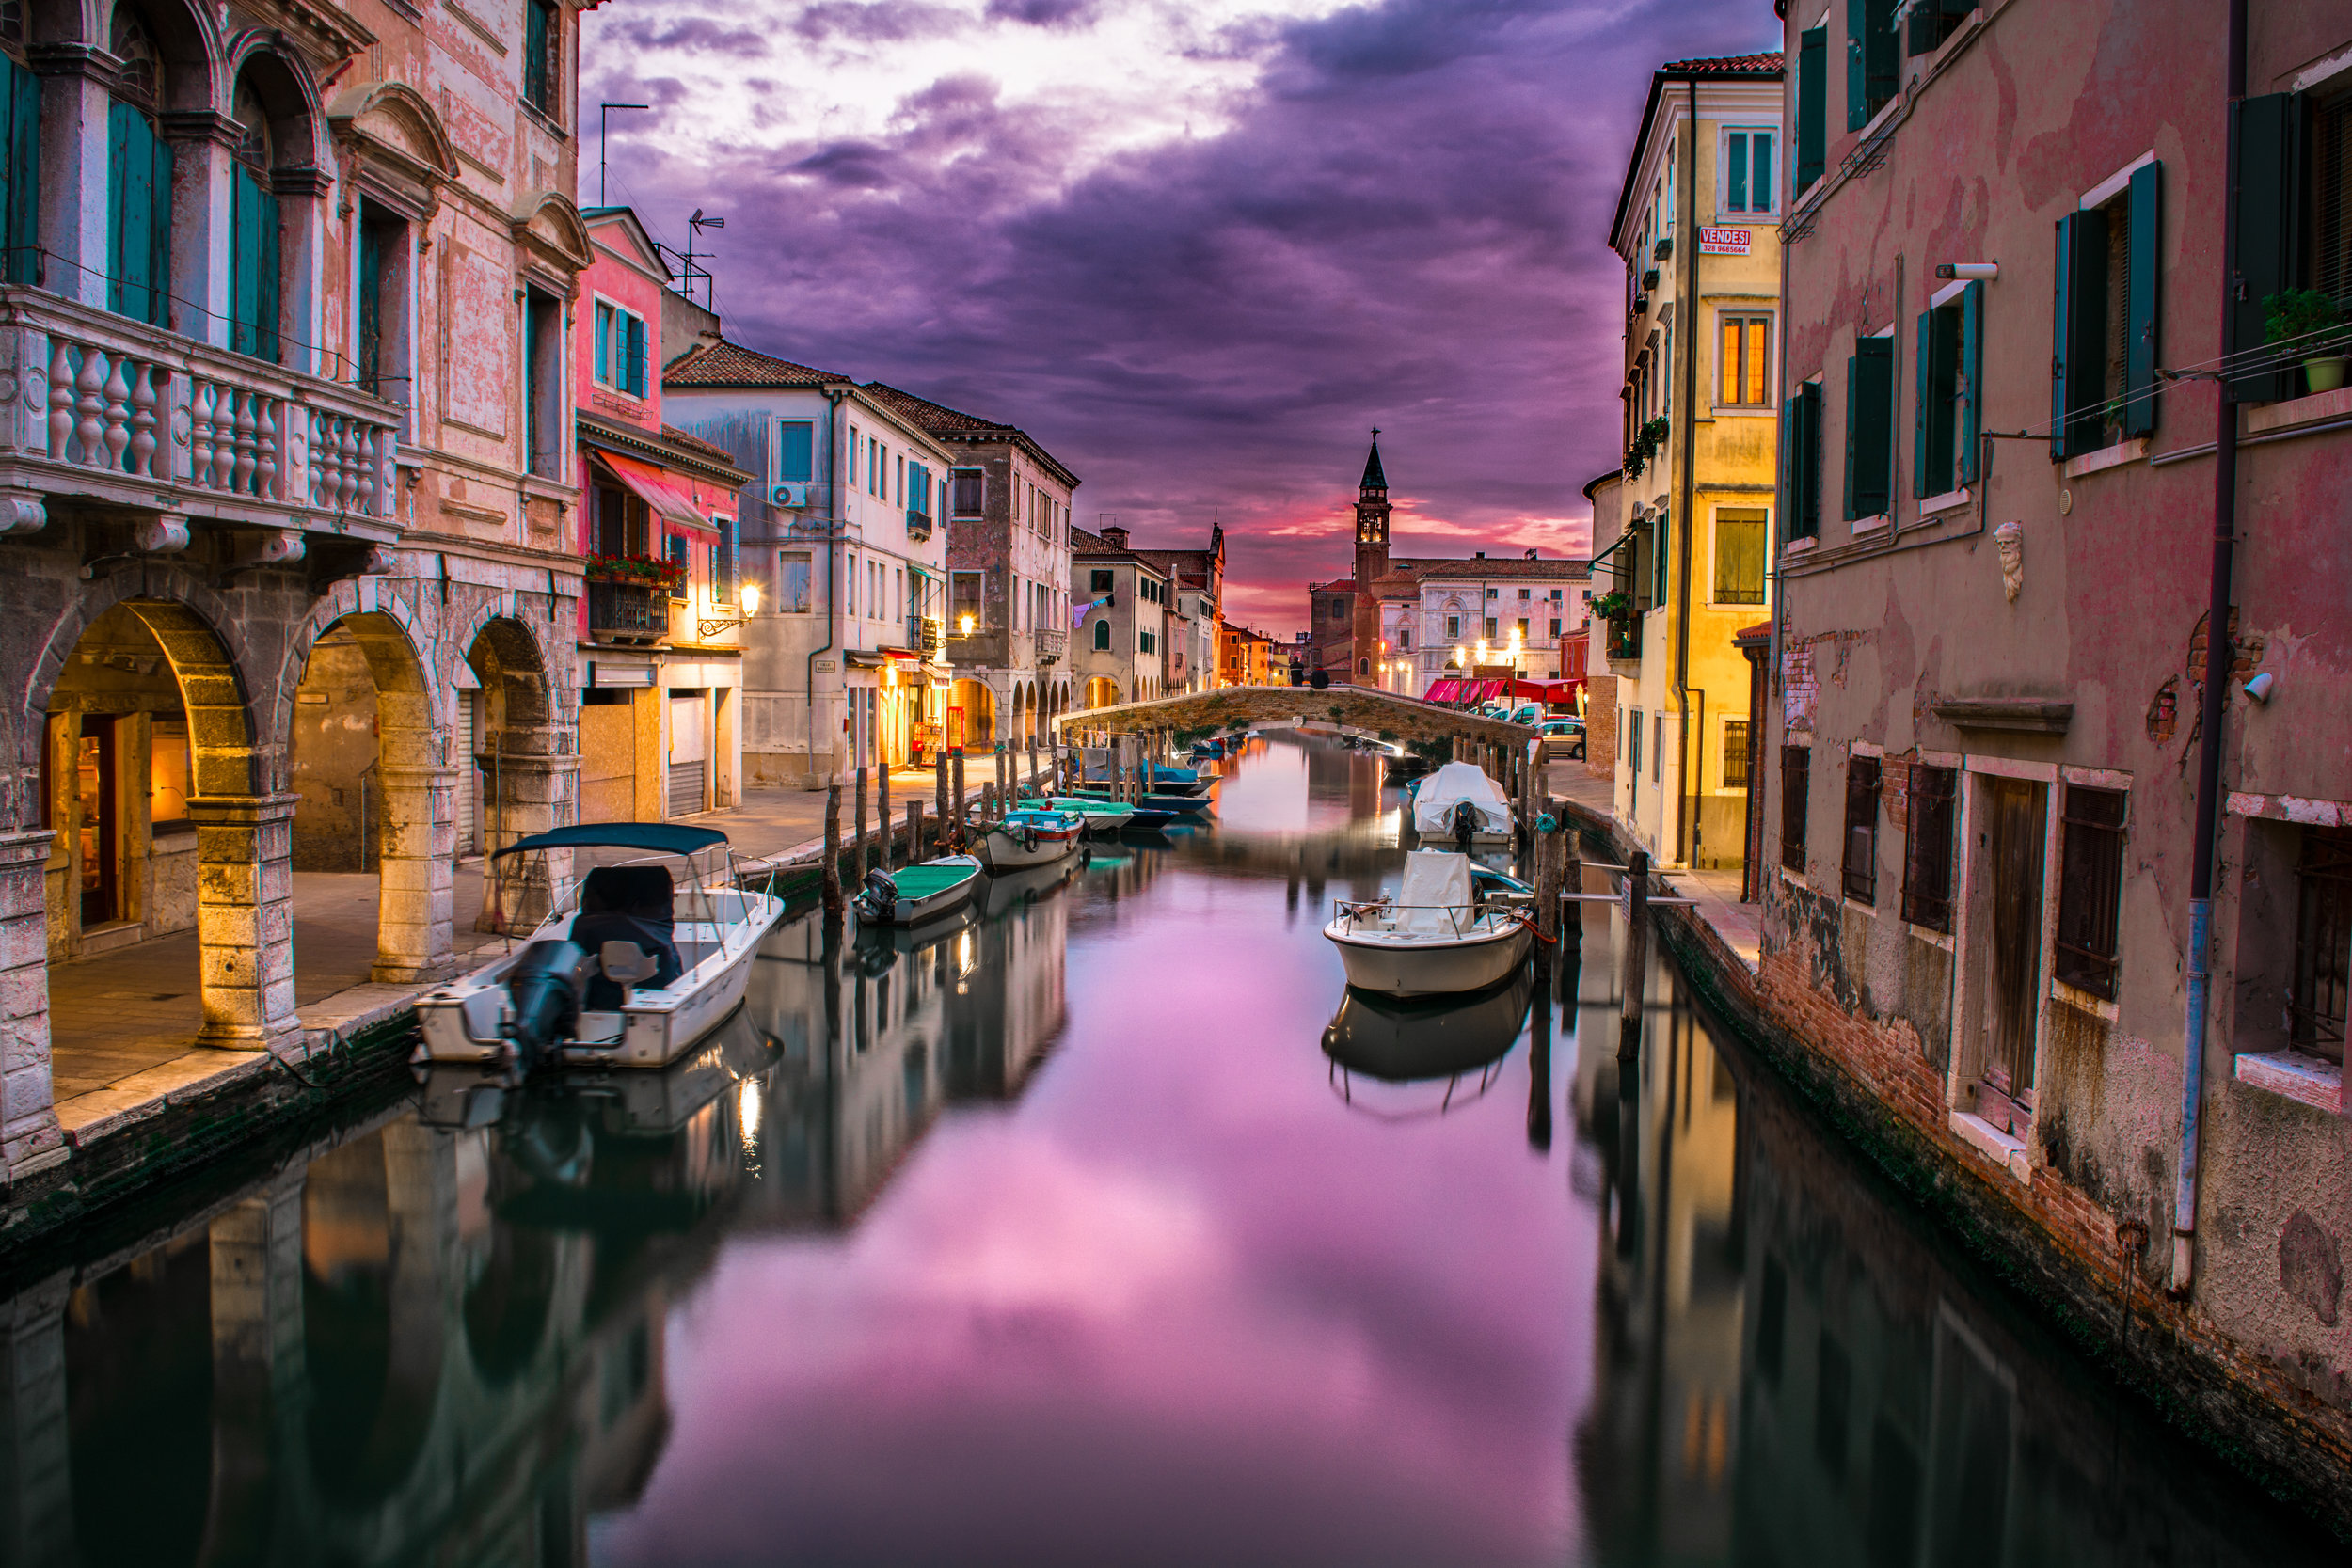 6 Quirky Things (I Learned the Hard Way) About Italian Culture - While Living with Families and Teaching abroad